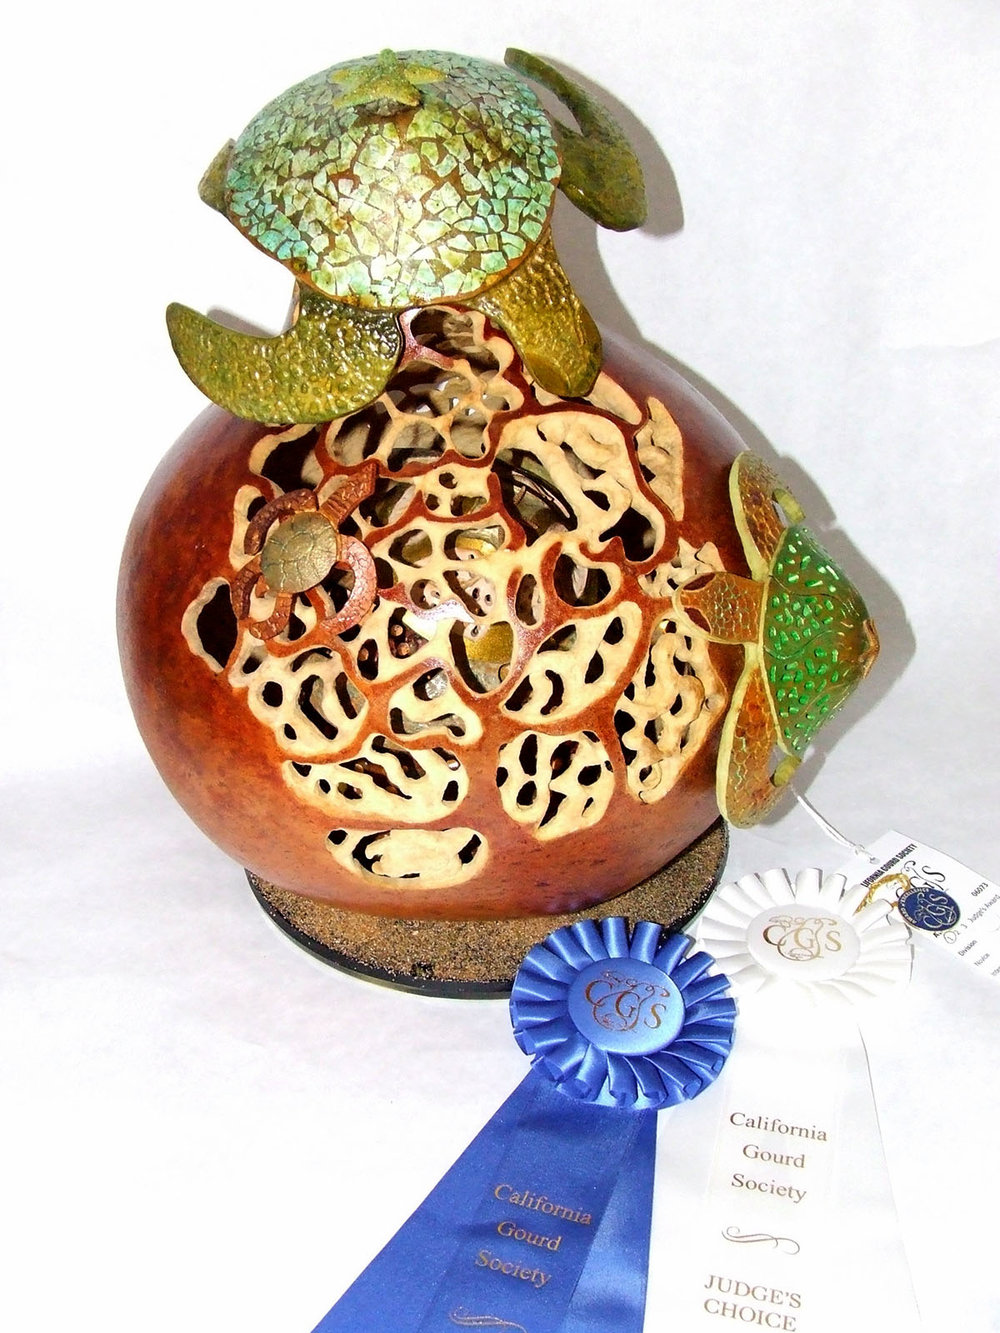 Pam Watson - People's Choice - Advanced - Filigree - 1st Place